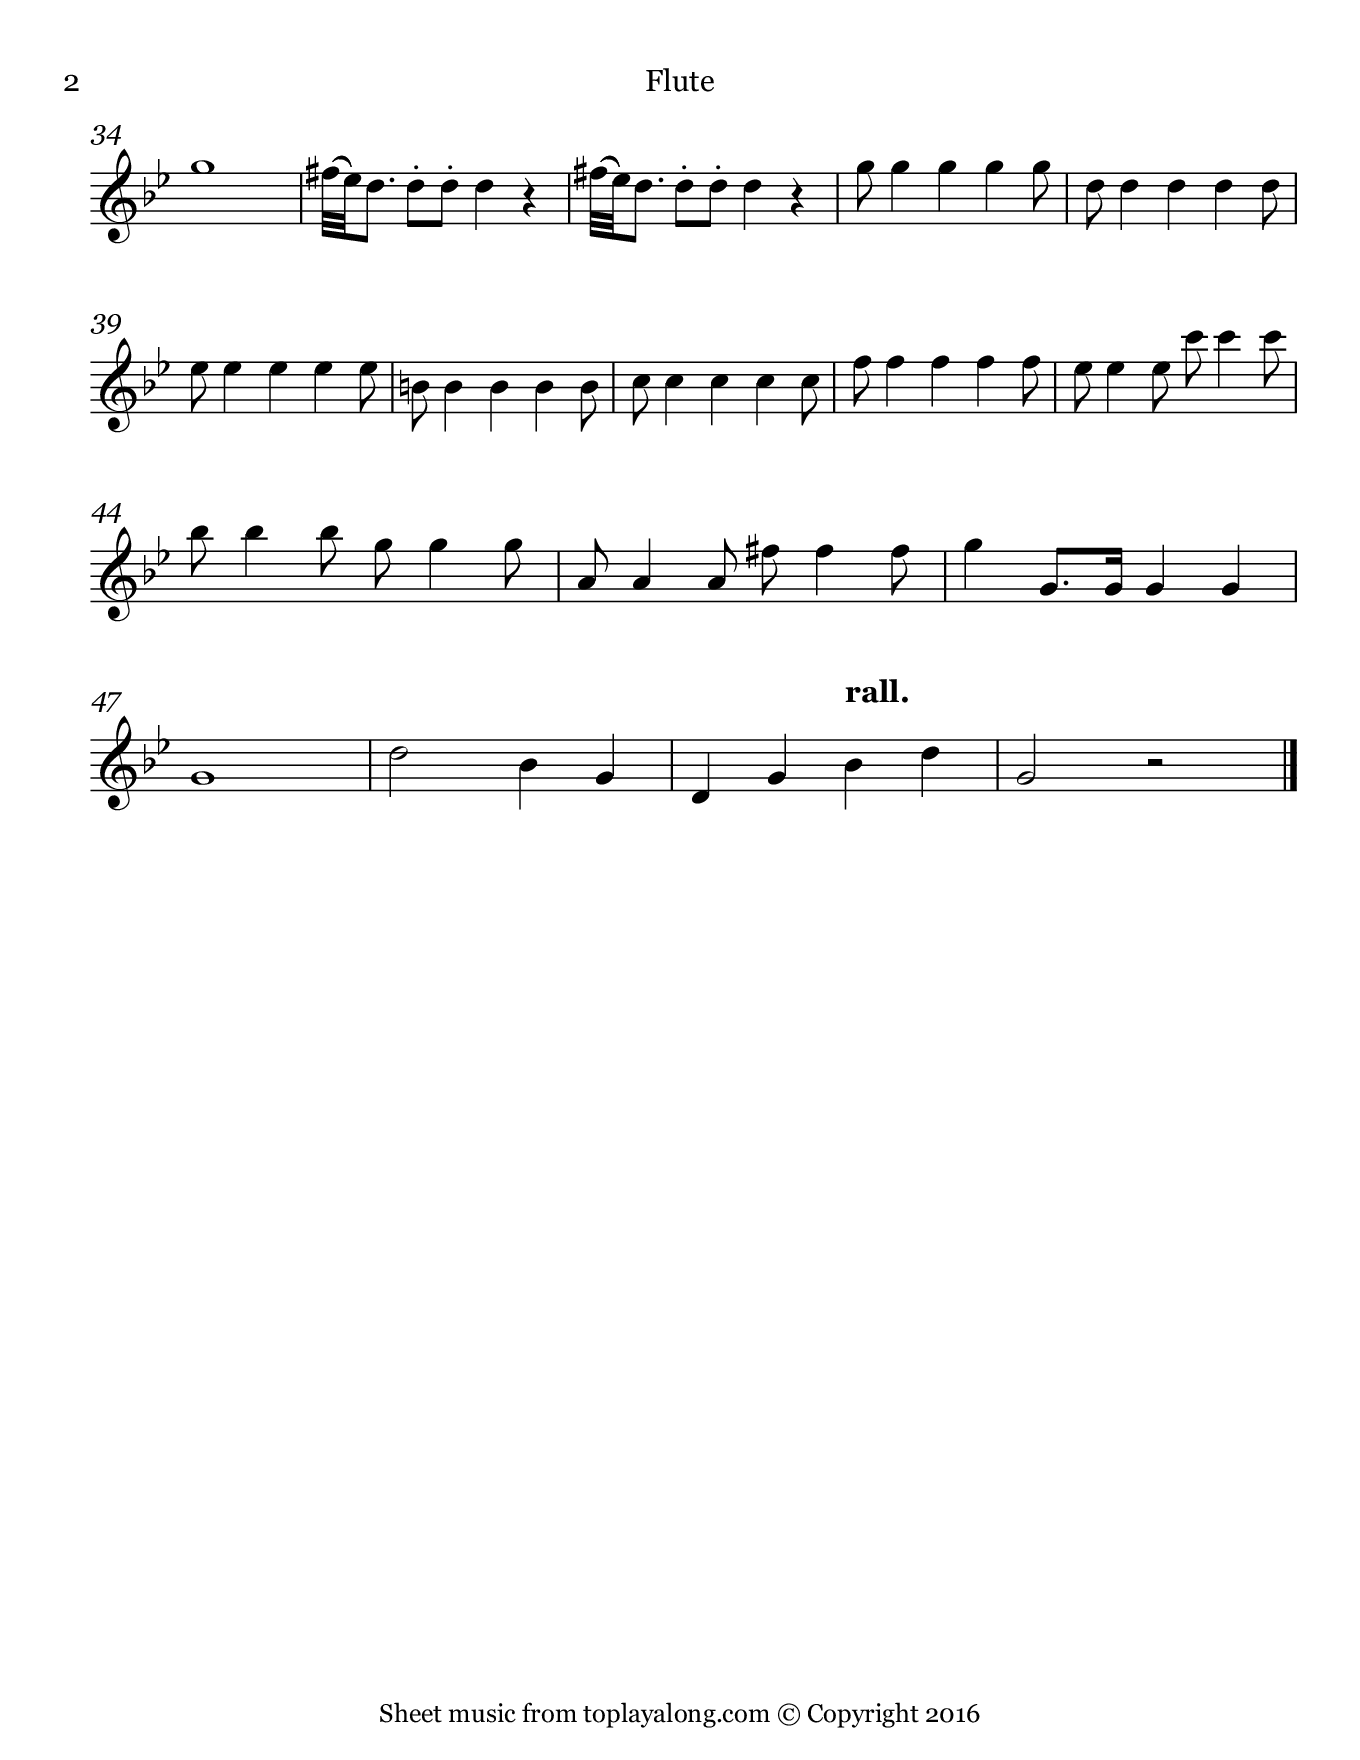 Symphony No. 25 in G minor K. 183 (Theme) by Mozart. Sheet music for Flute, page 2.